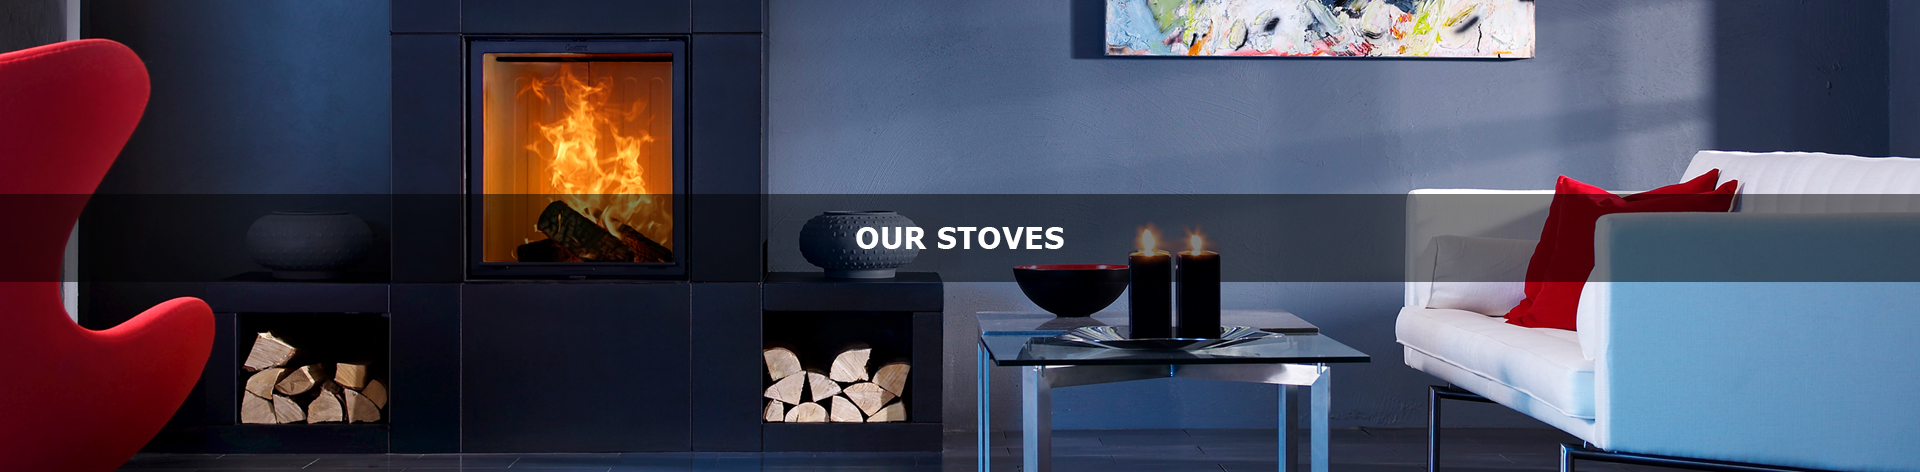 Stove World Glasgow Our Stoves Home.